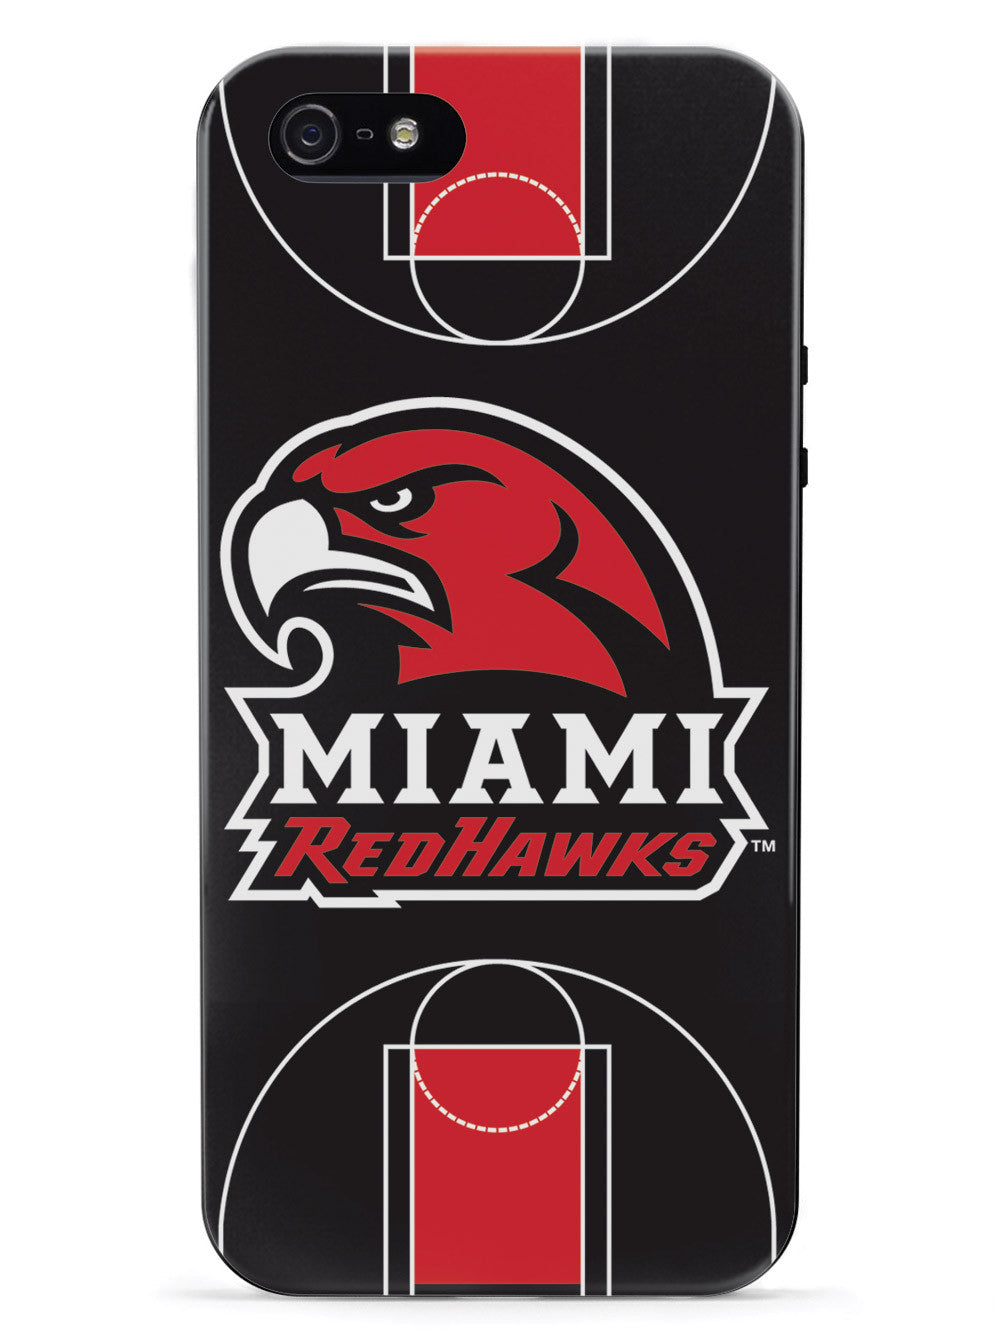 Miami University RedHawks - Basketball Court Case